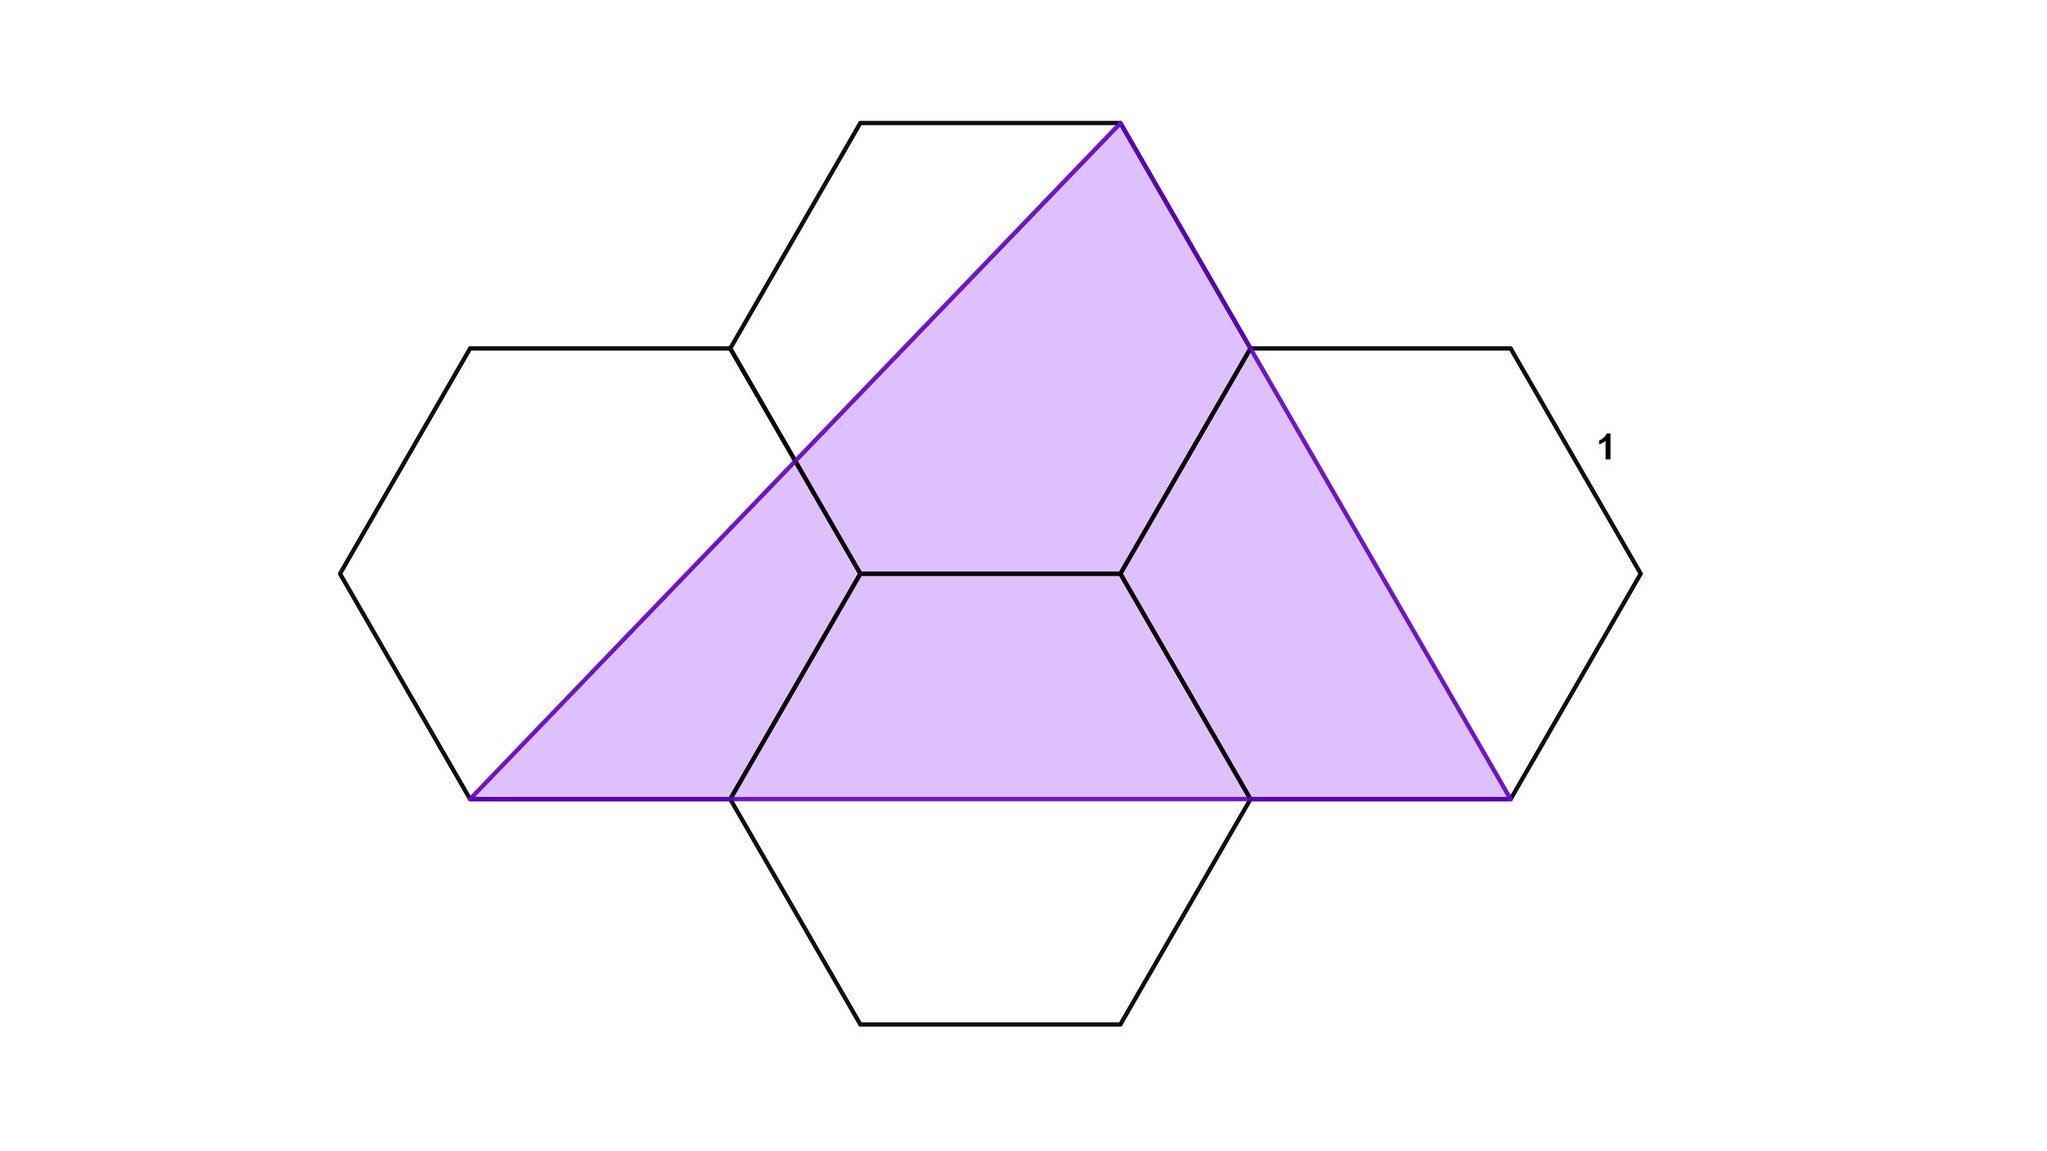 Find the exact value for the purple area #MTBoS #iTeachMath https://t.co/INPCWfM9GP